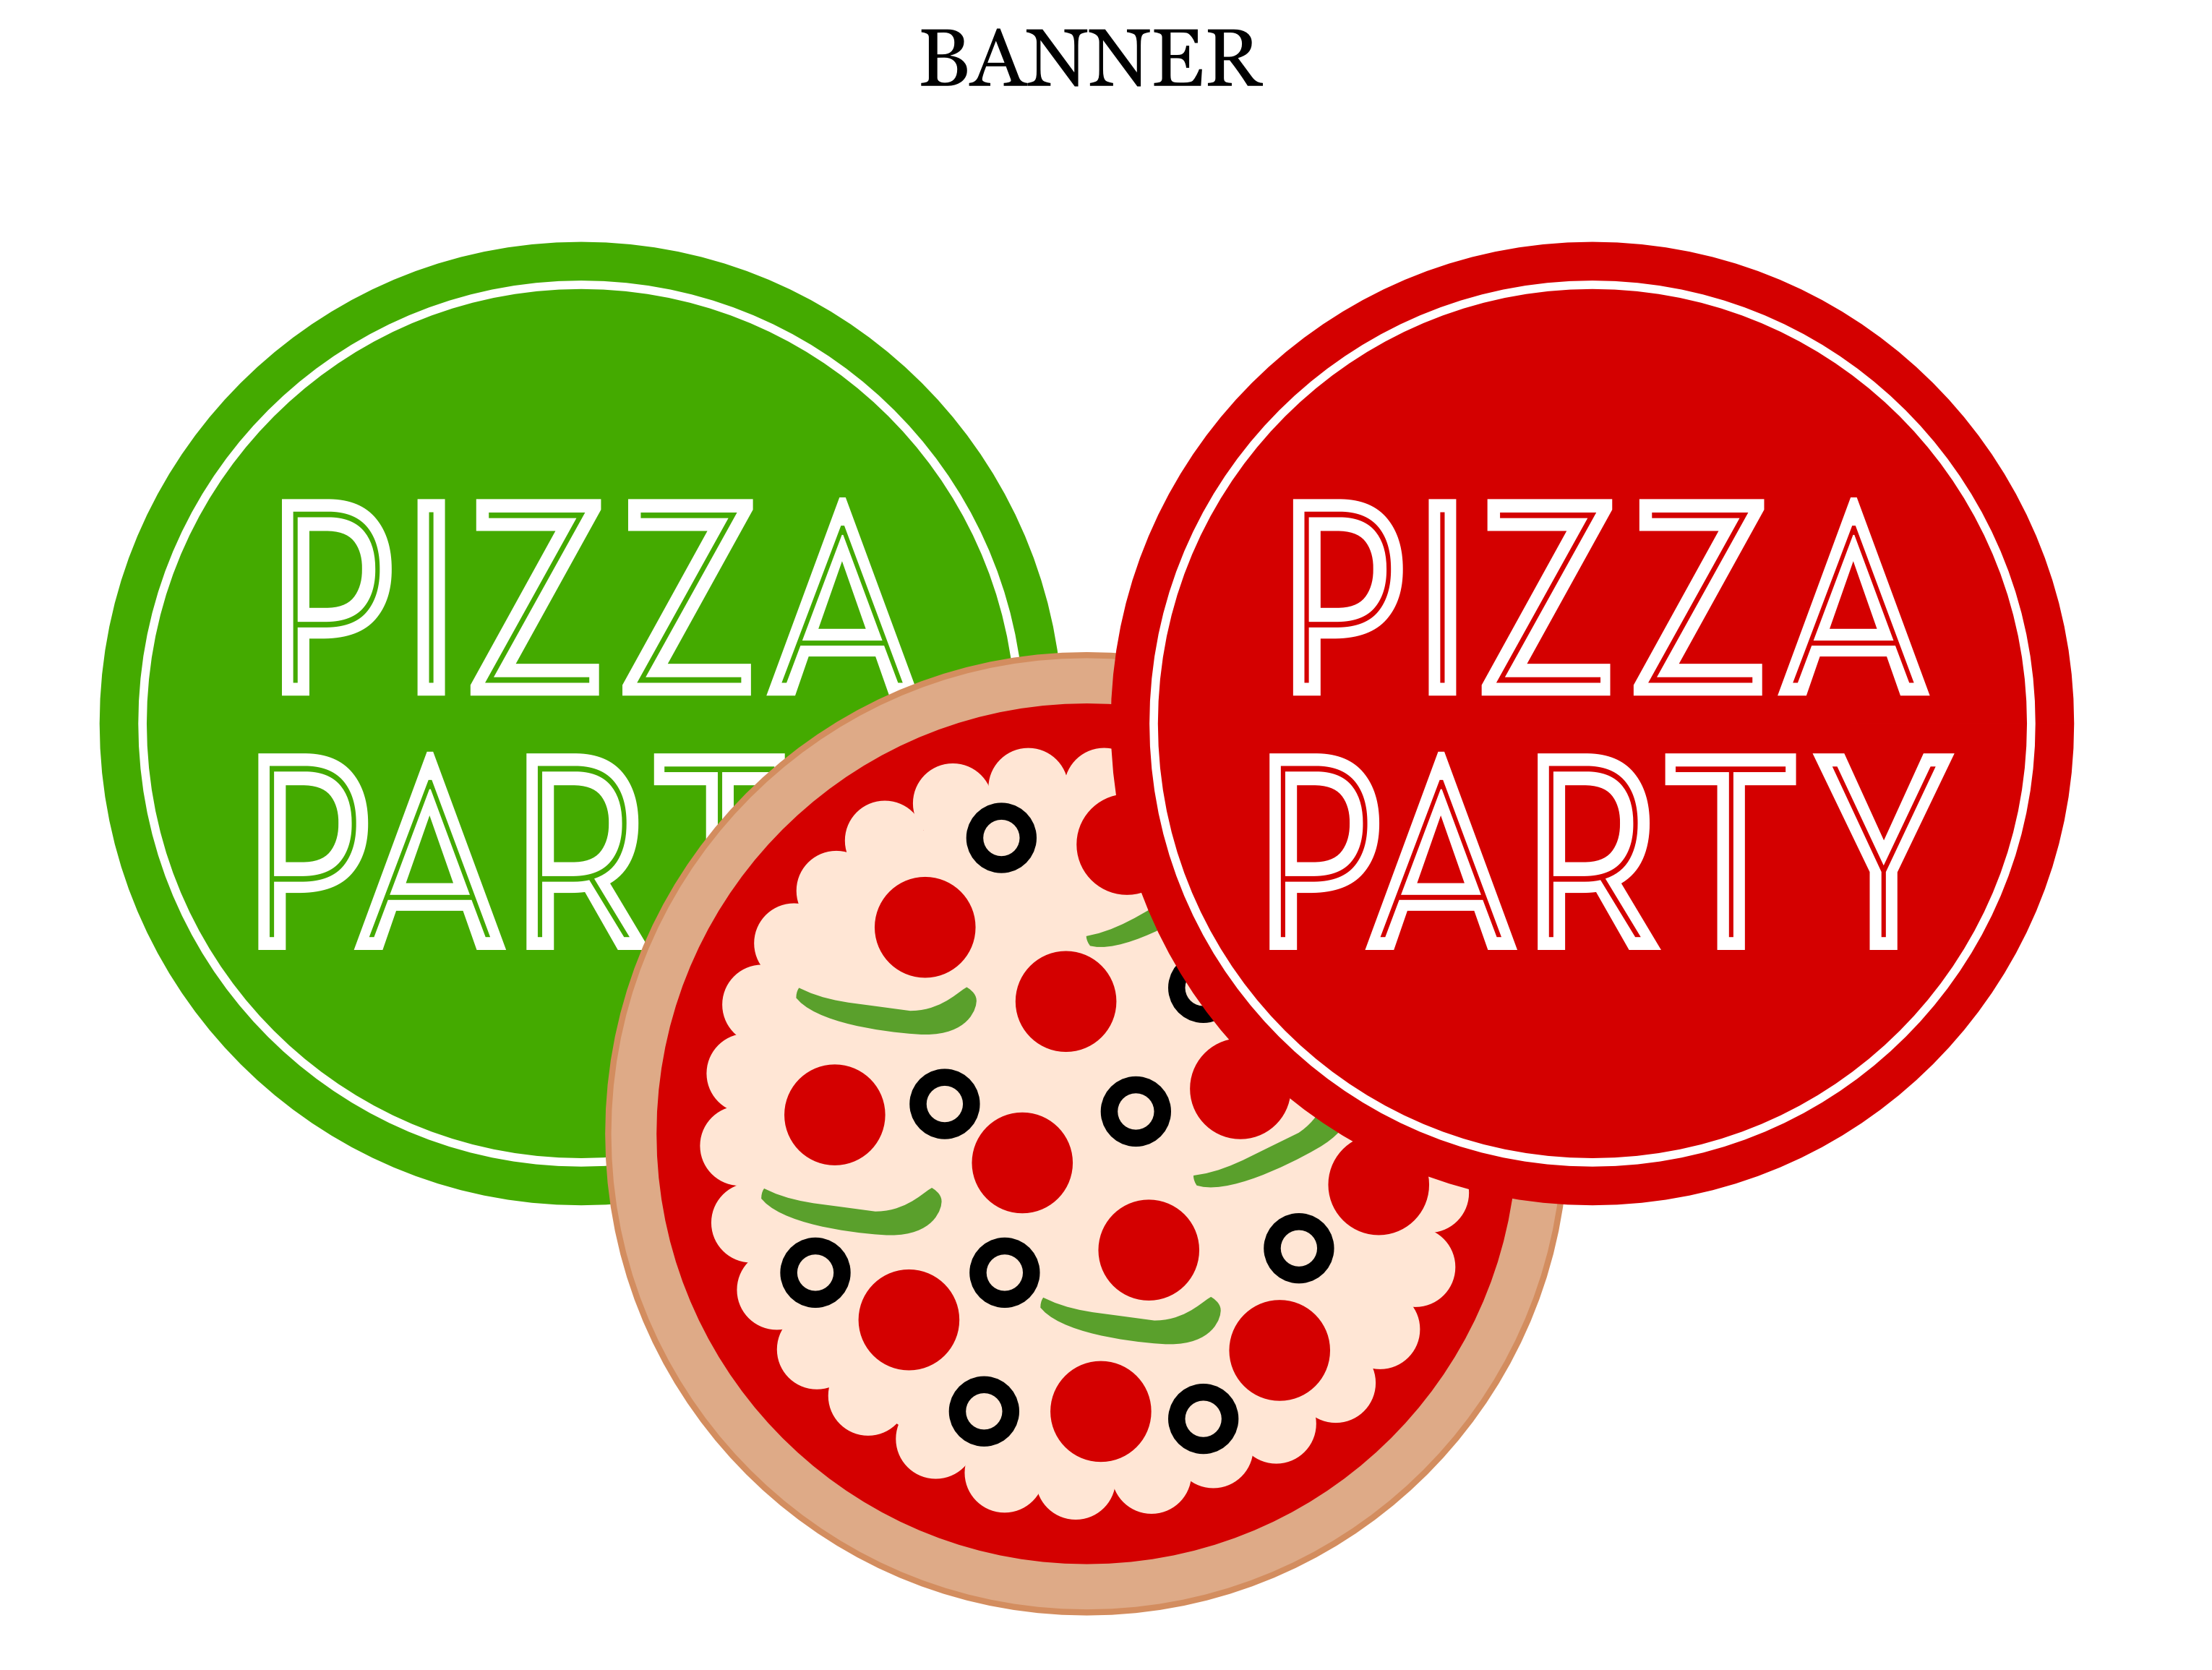 Free Pizza Party Printables from Printabelle | Catch My Party: catchmyparty.com/blog/free-pizza-party-printables-from-printabelle